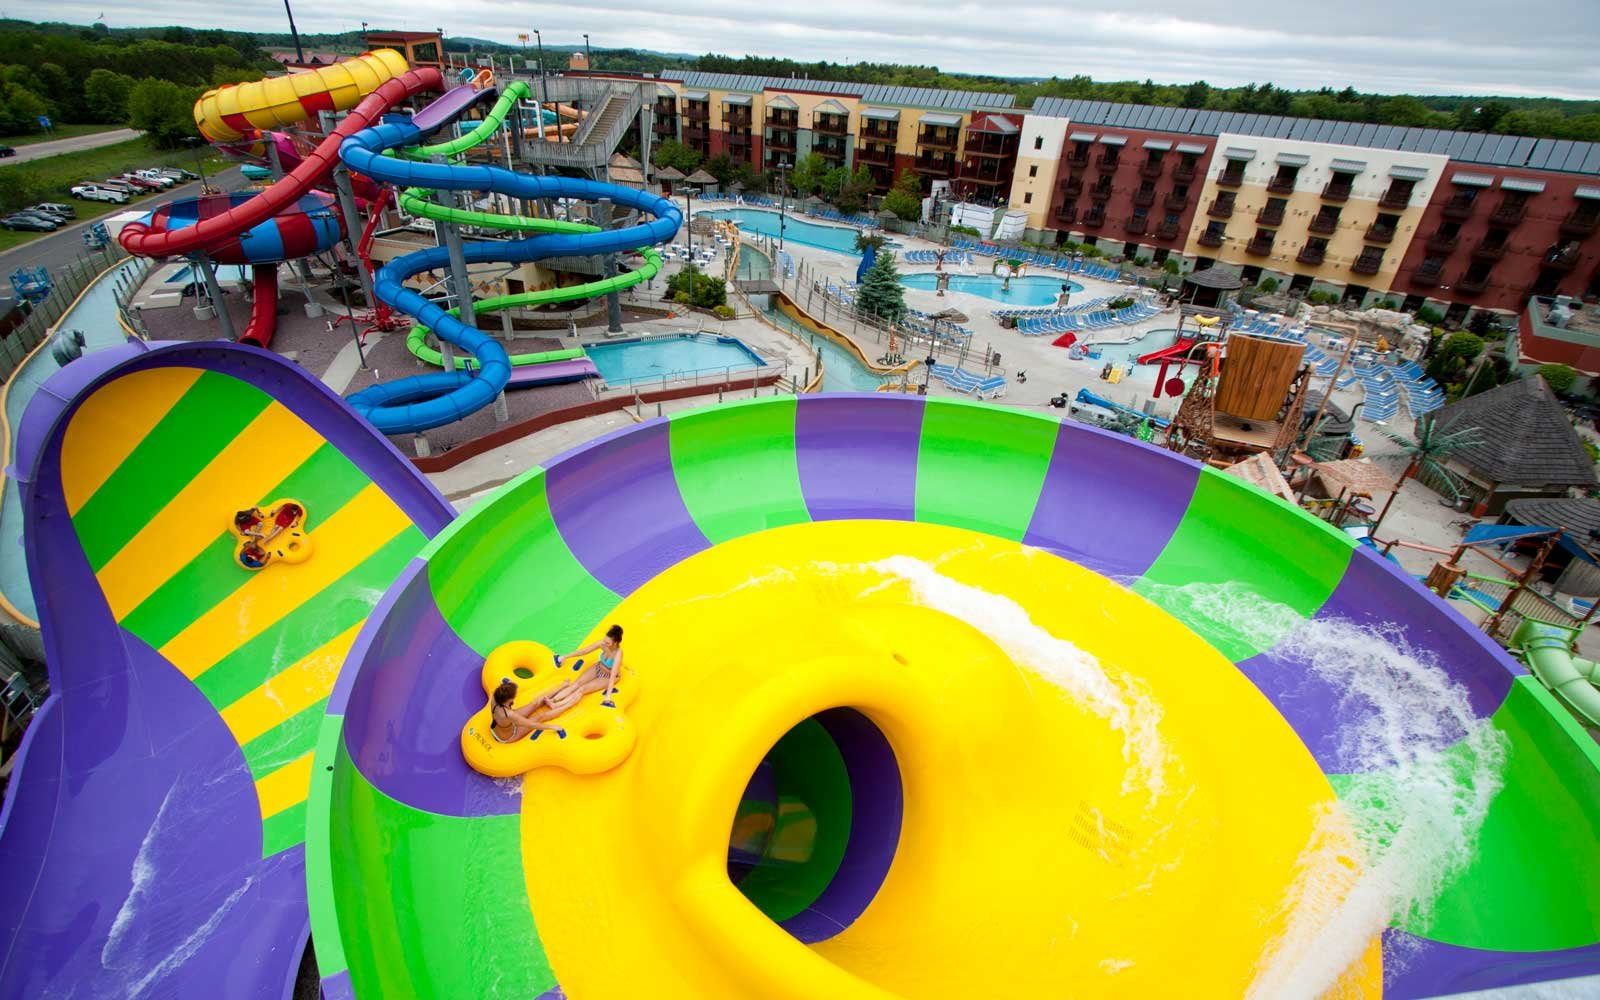 Slide at the Kalahari Resort Wisconsin Dells